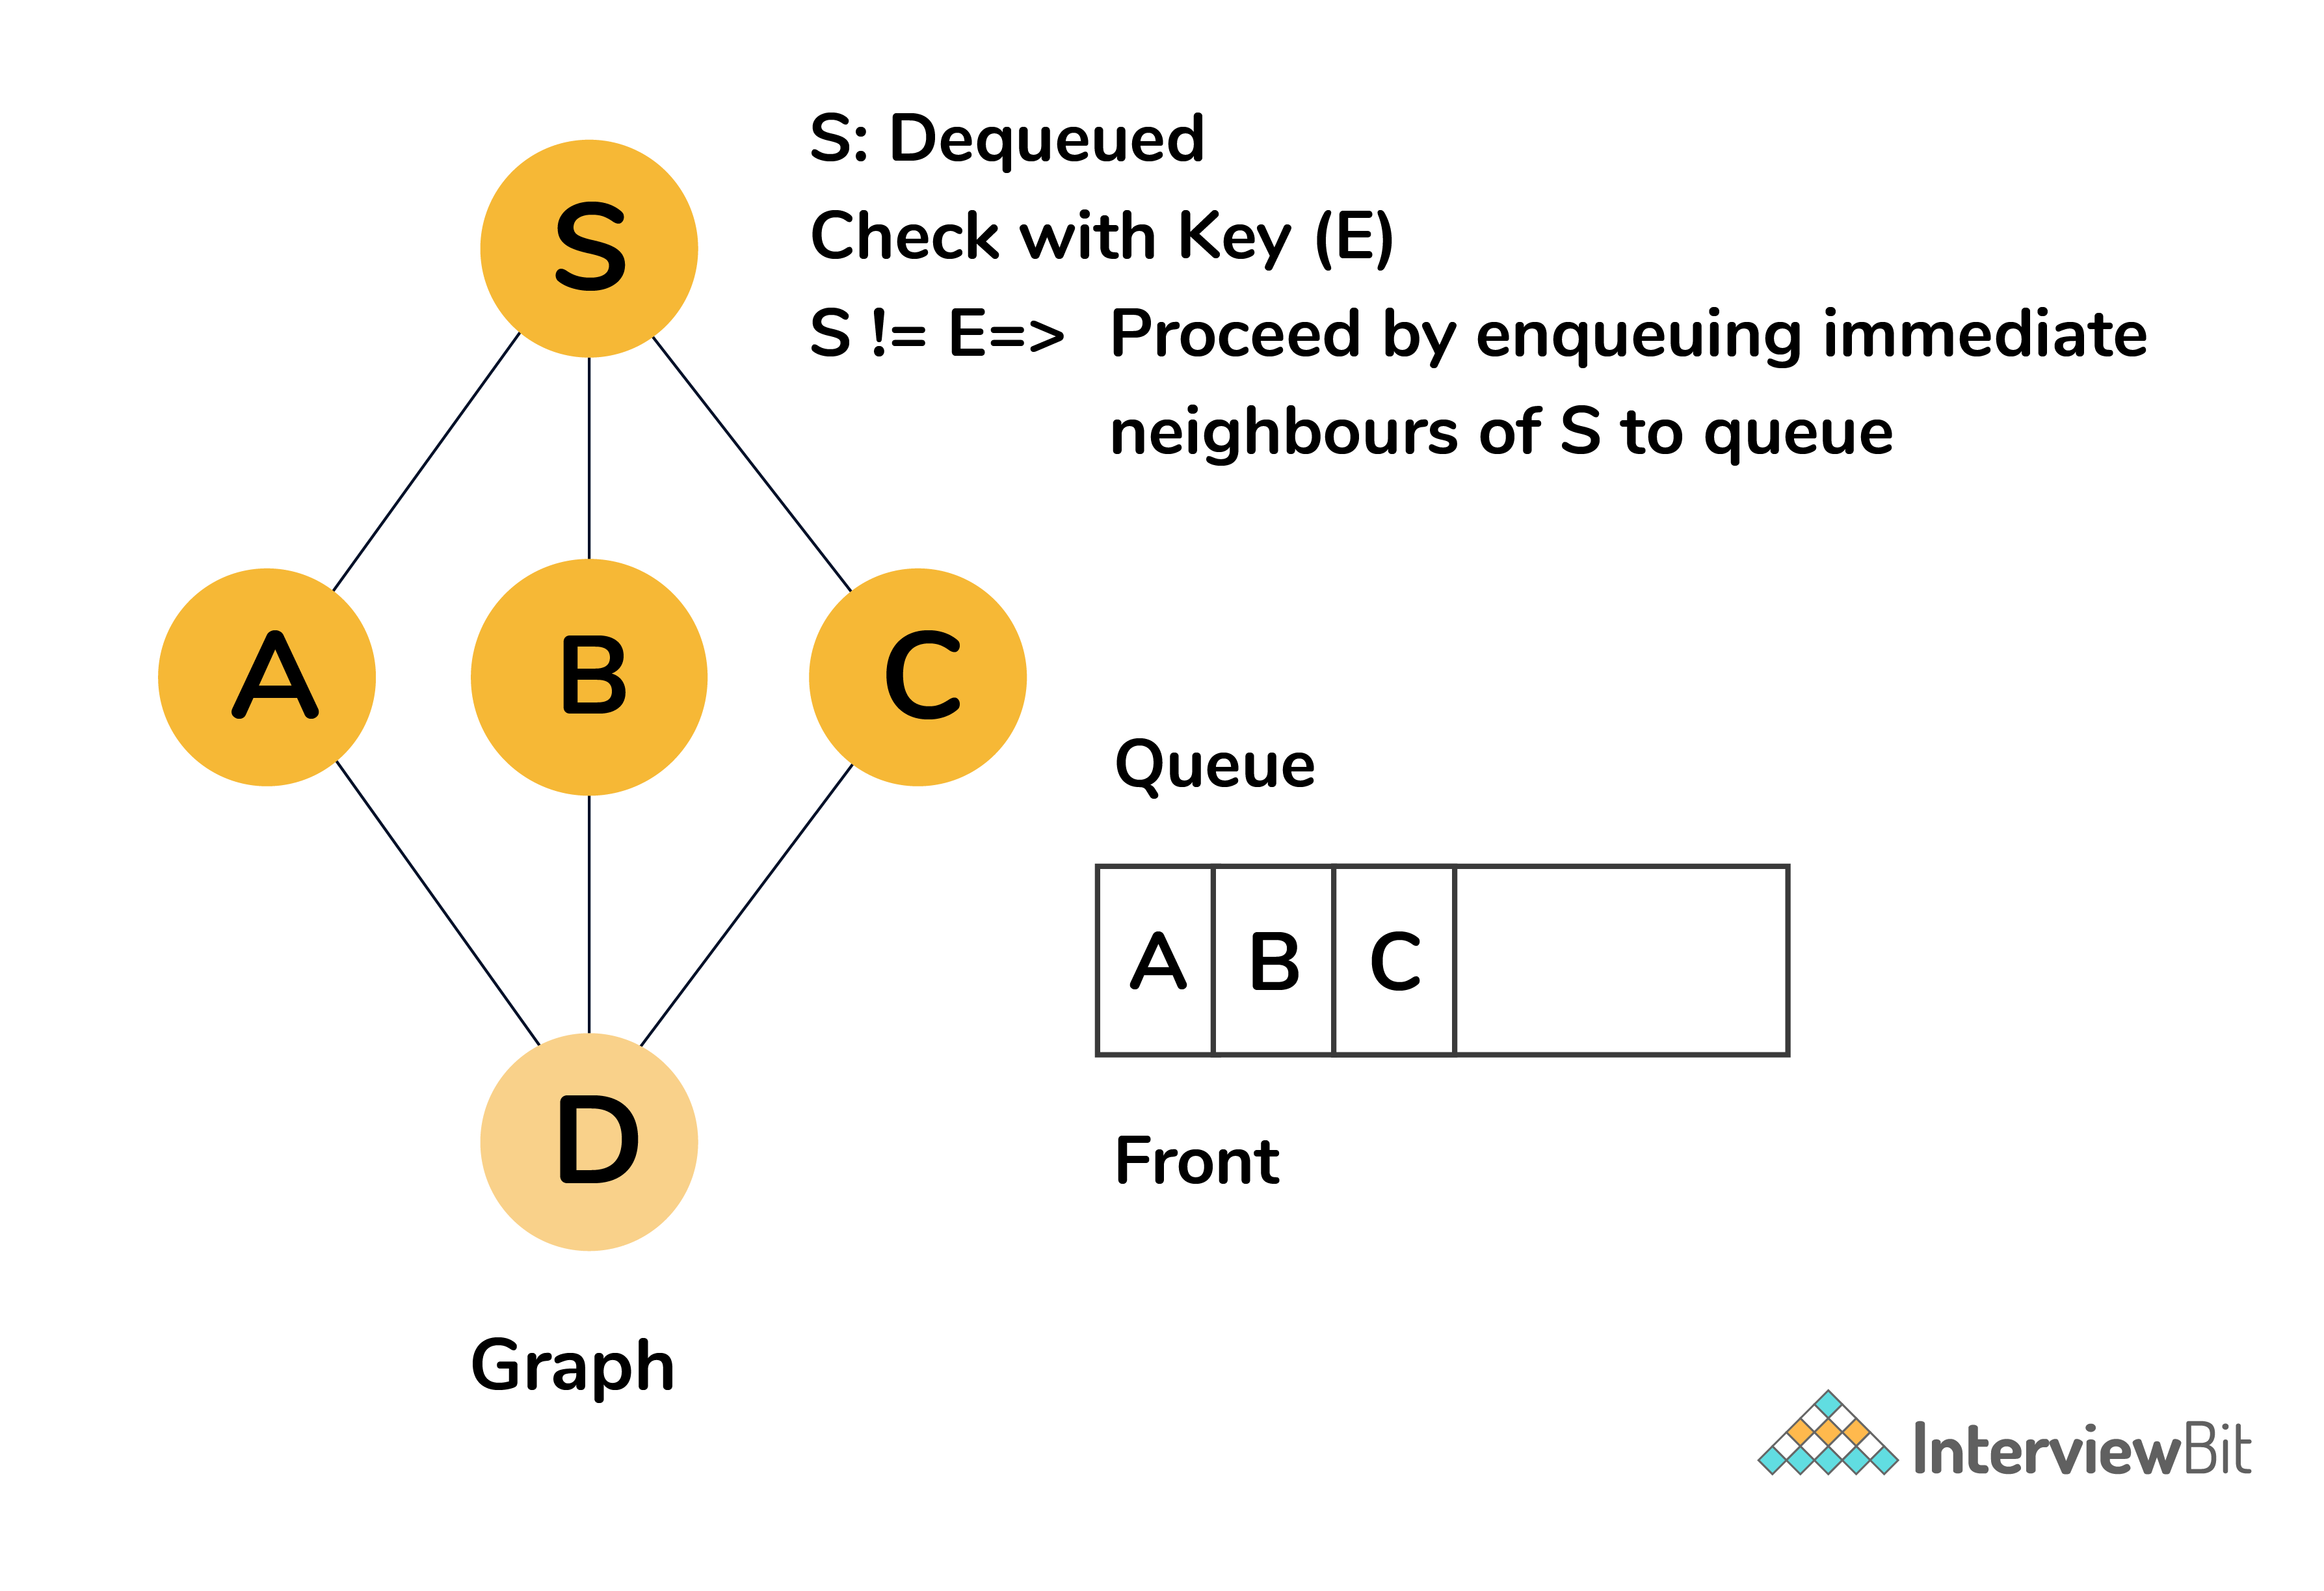 A, B, C enqueued on Queue